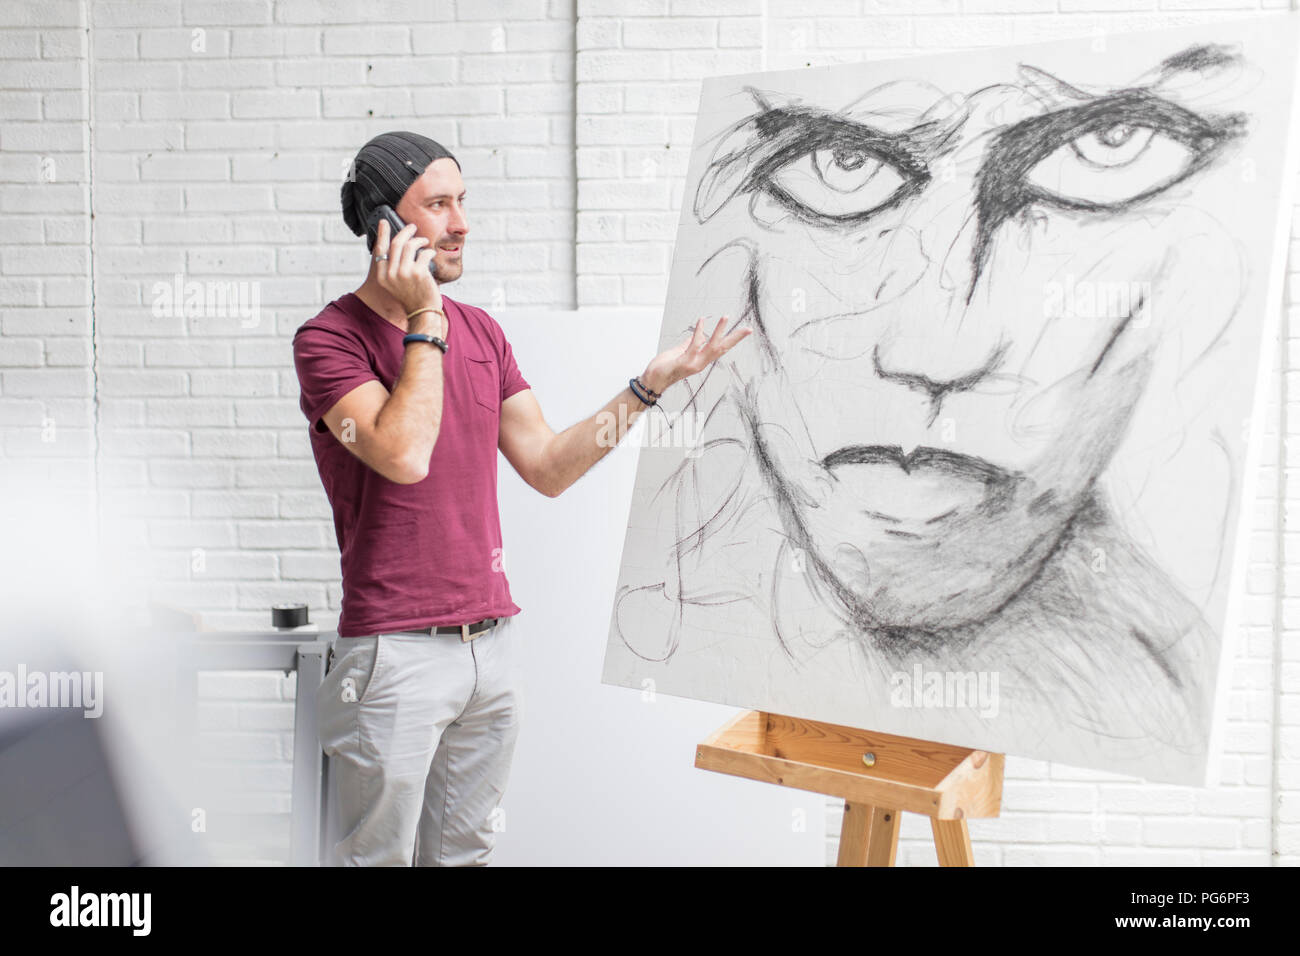 Artist on the phone in studio next to drawing - Stock Image